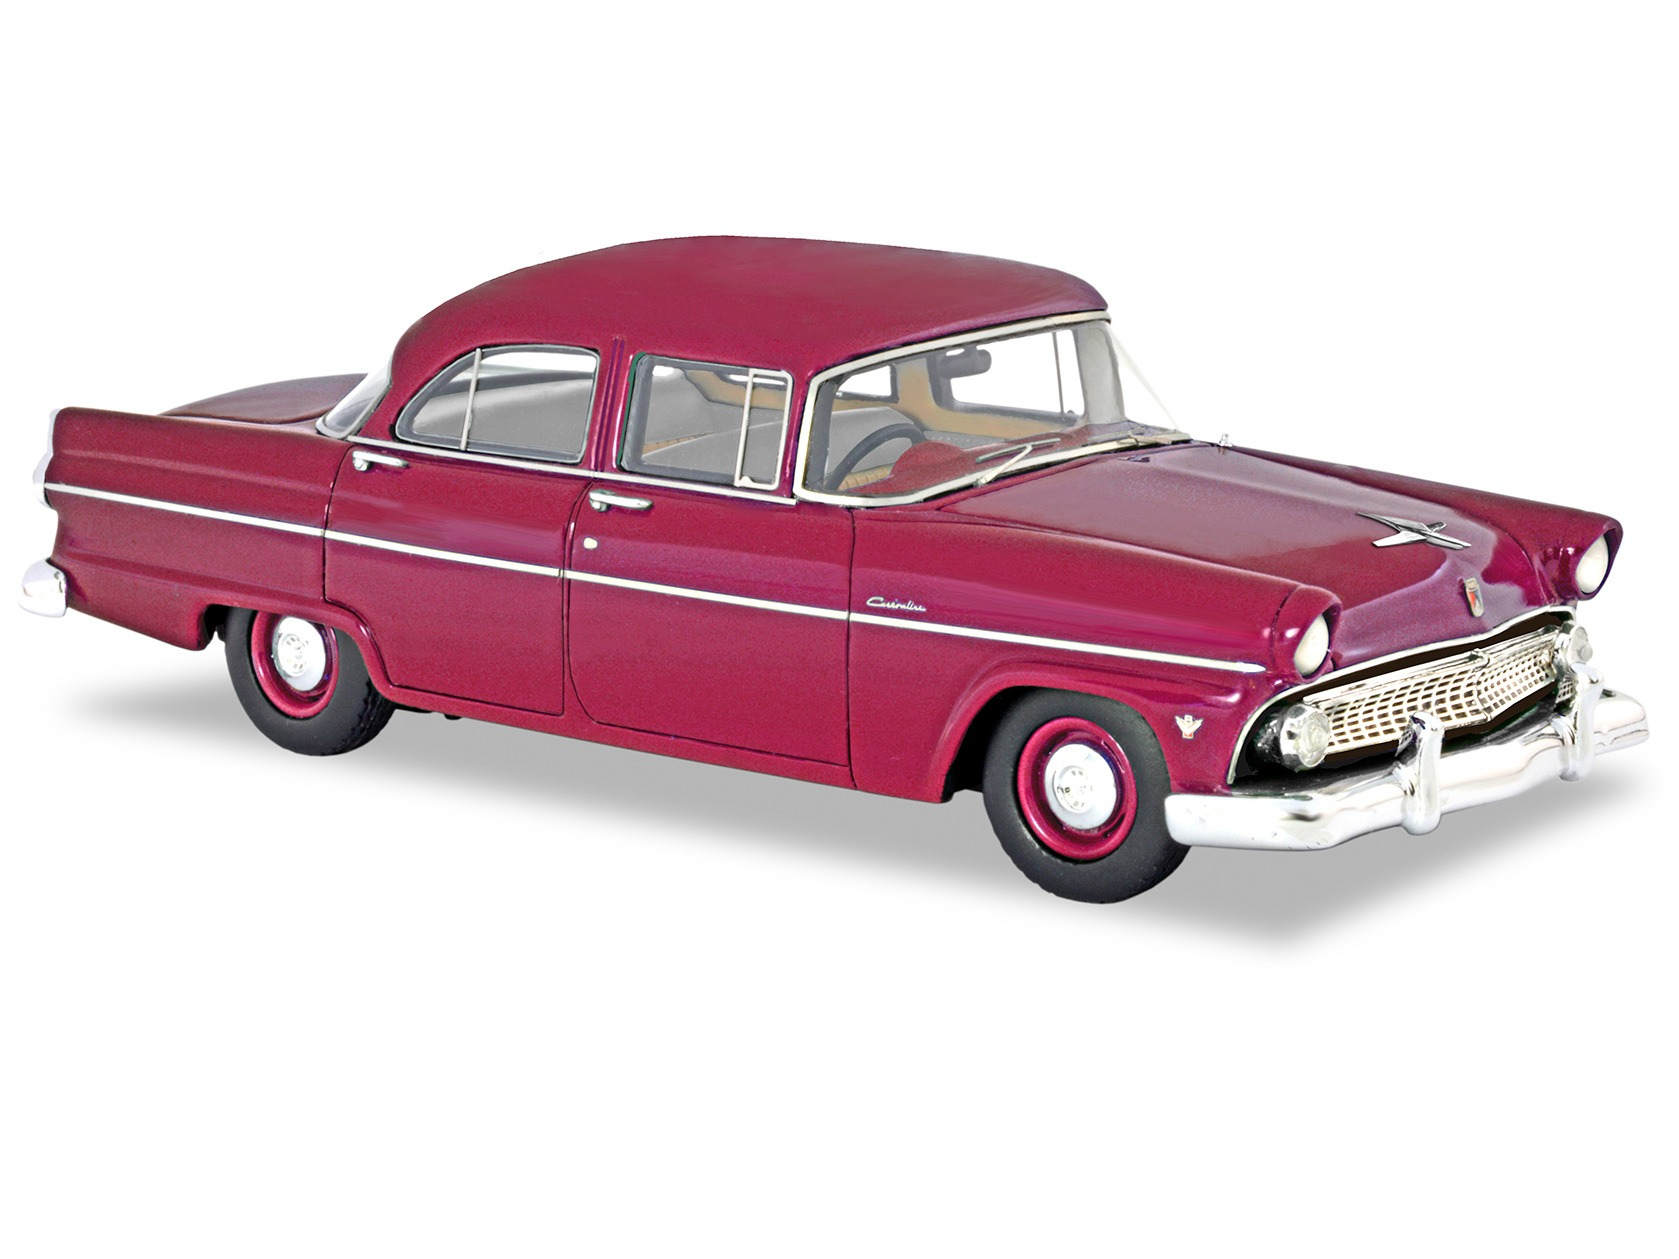 1955 Customline Sedan – Torch Red